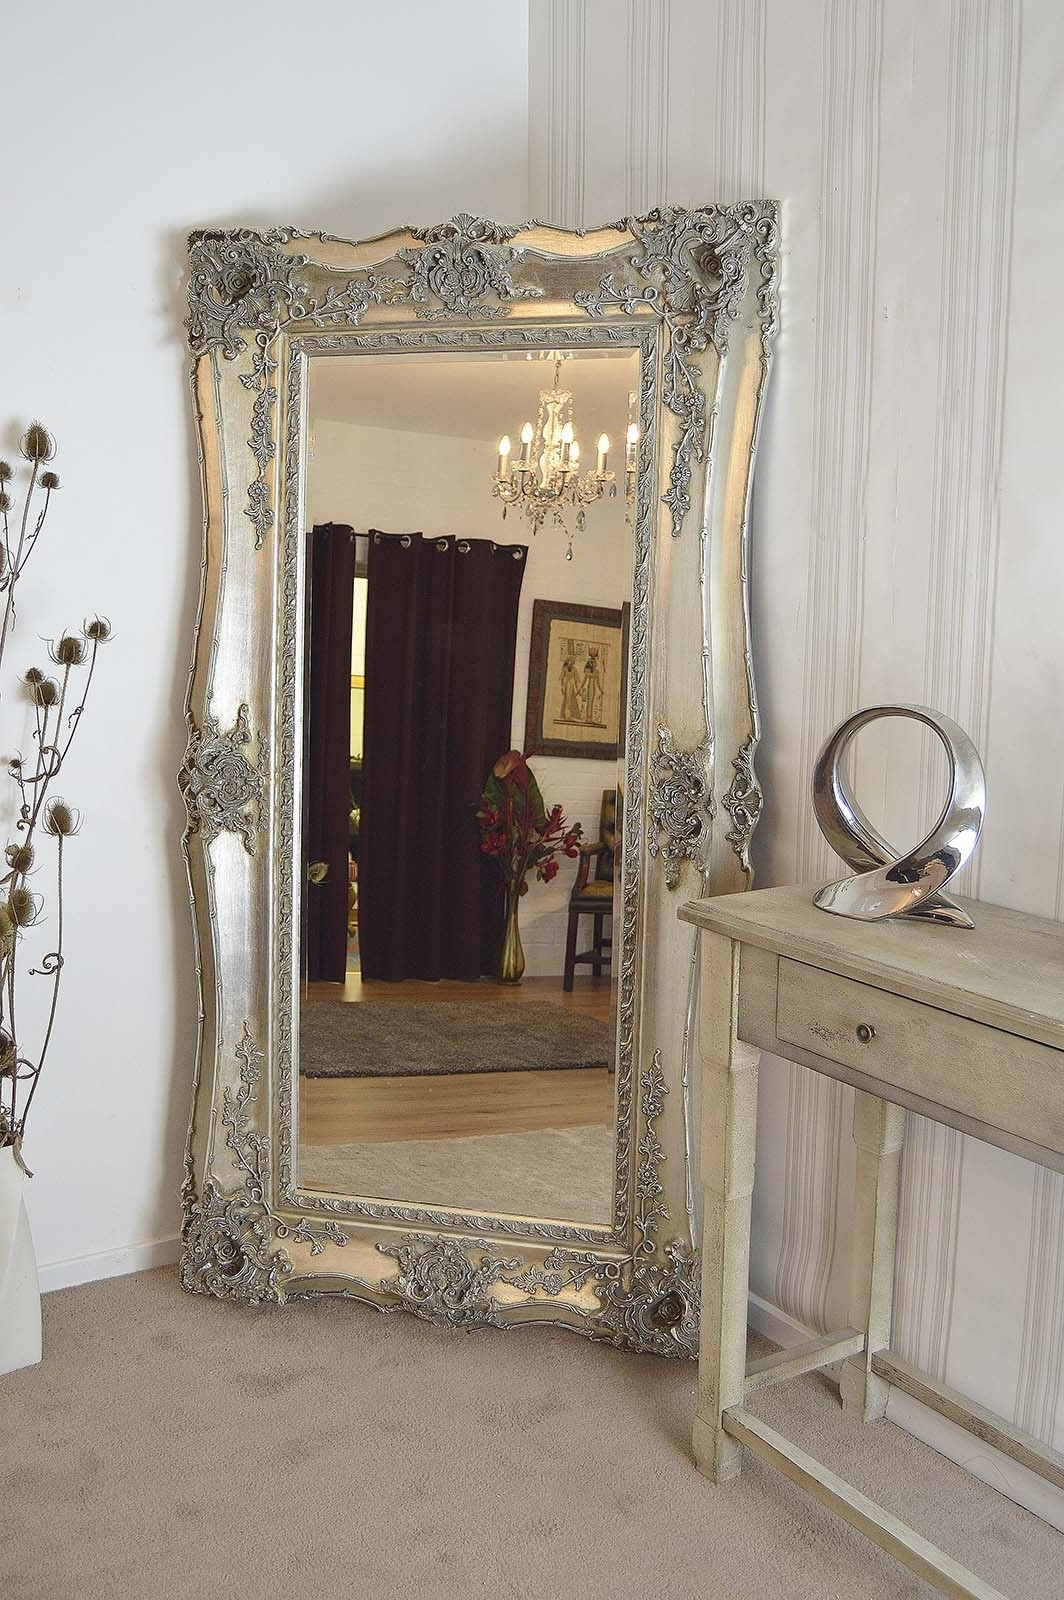 2020 Very Large Wall Mirrors Within Extra Large Mirrors Tips For Choosing Framed Bathroom Very Round (View 3 of 20)